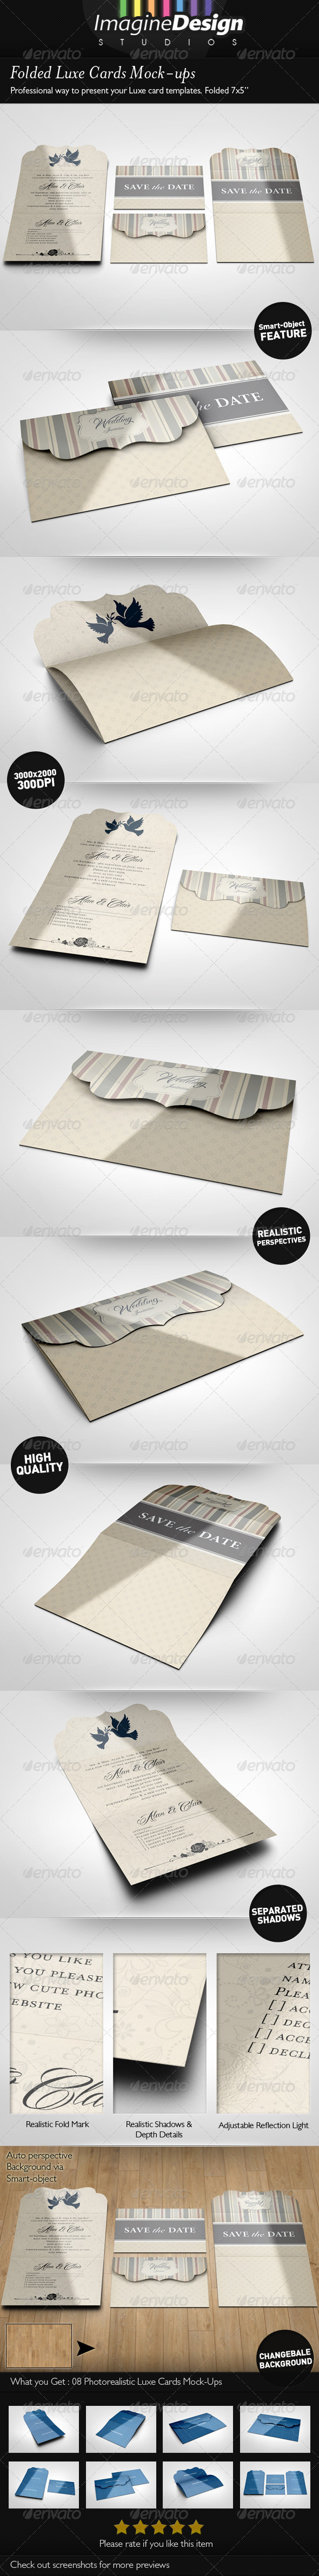 Folded Luxe Cards Mock-ups - Miscellaneous Print